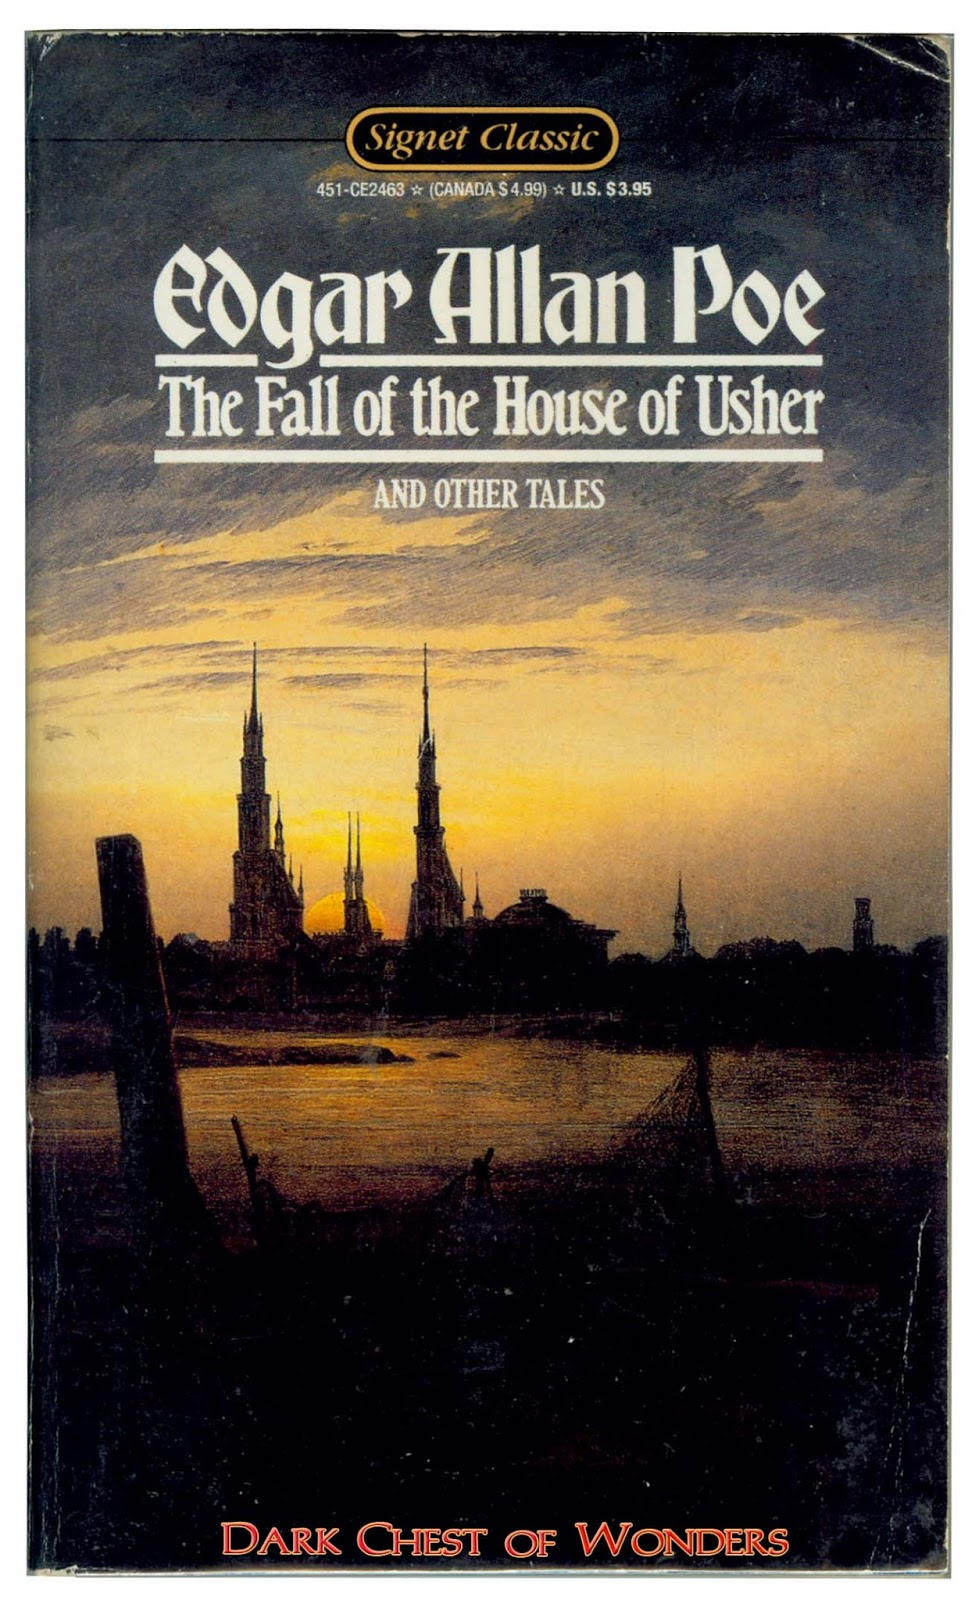 an assessment of the short story the fall of the house of usher by edgar allan poe Transcendental philosophy is at the very center of edgar allan poe's the fall of the house of usher this short story flows with rich details and dark overtones inviting the reader into a.